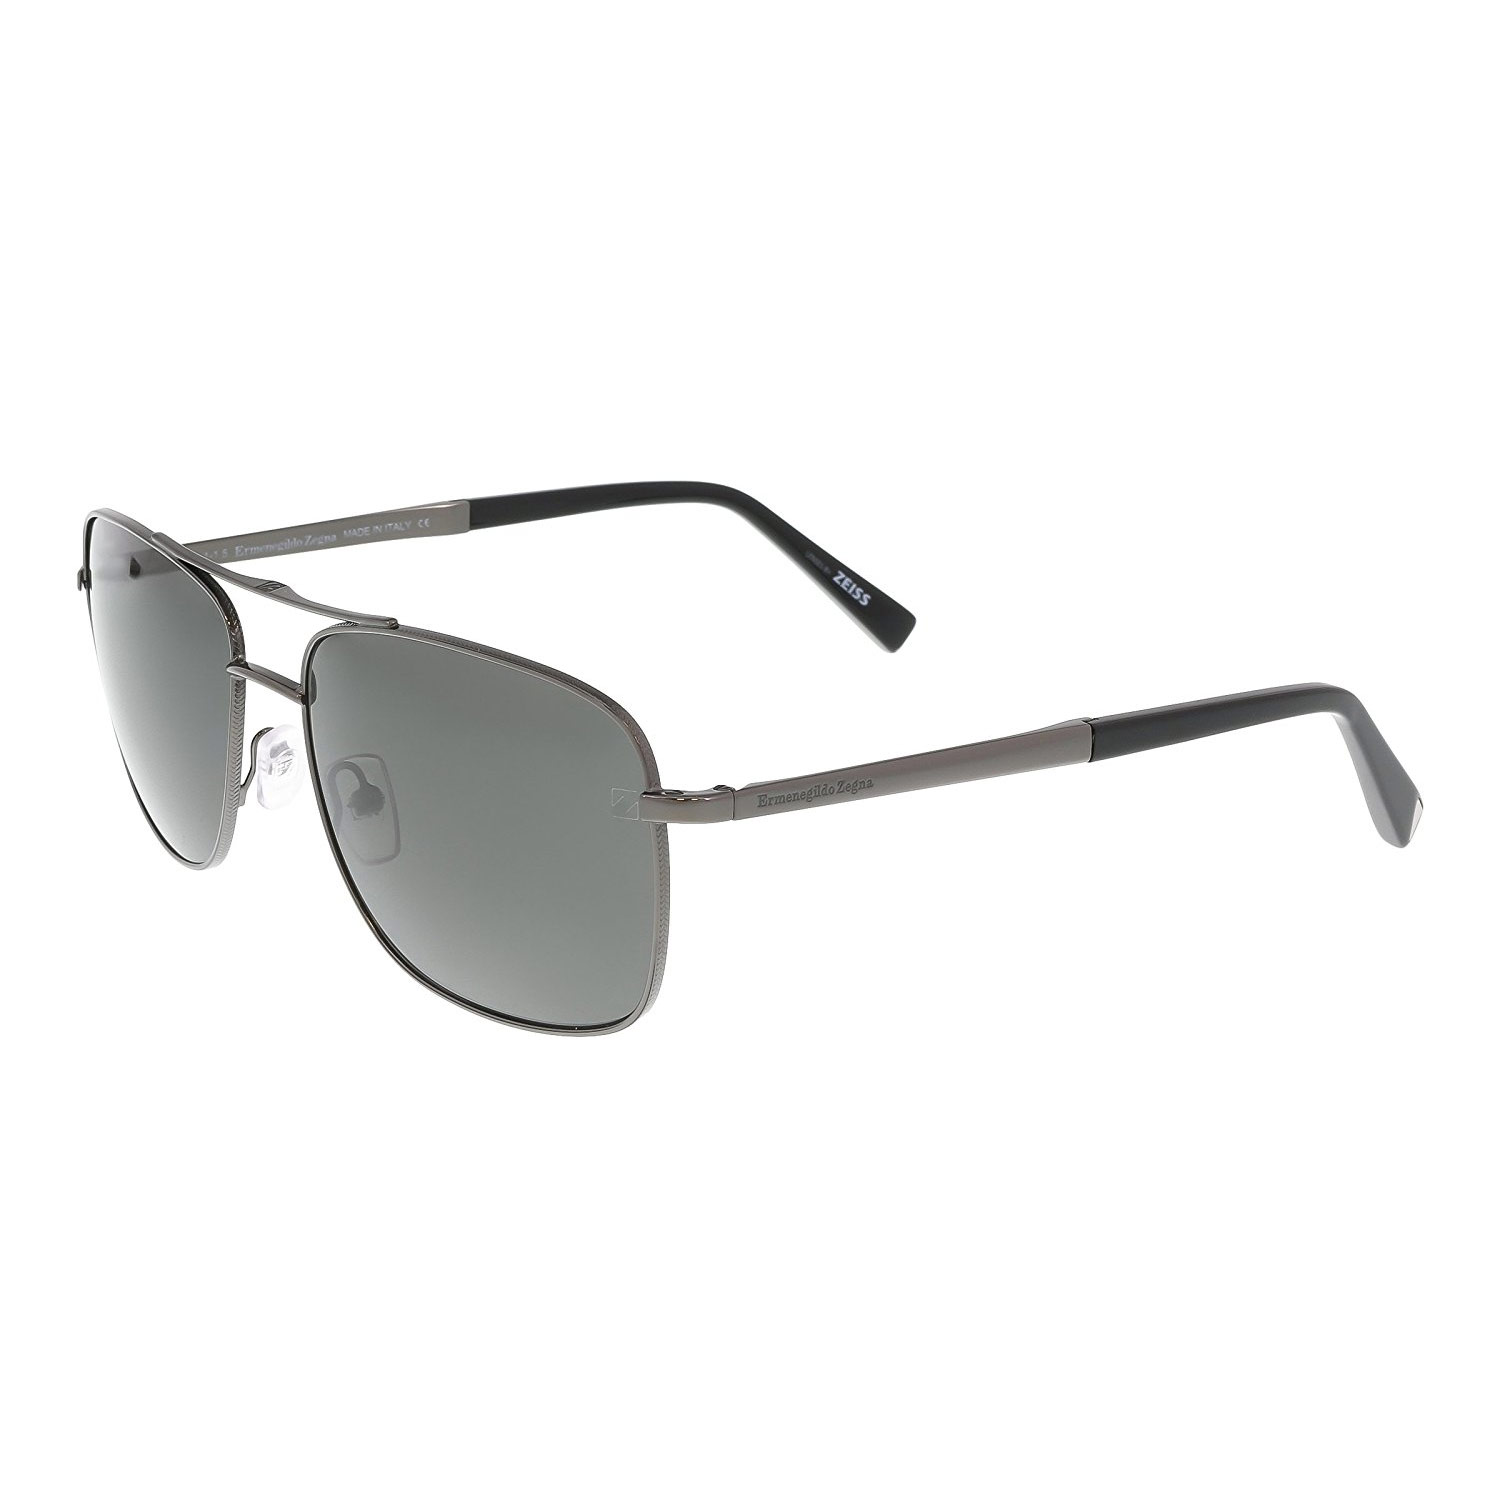 336866fb414 Details about Ermenegildo Zegna EZ0021-08D Mens Polarized Sunglasses Dark  Gunmetal